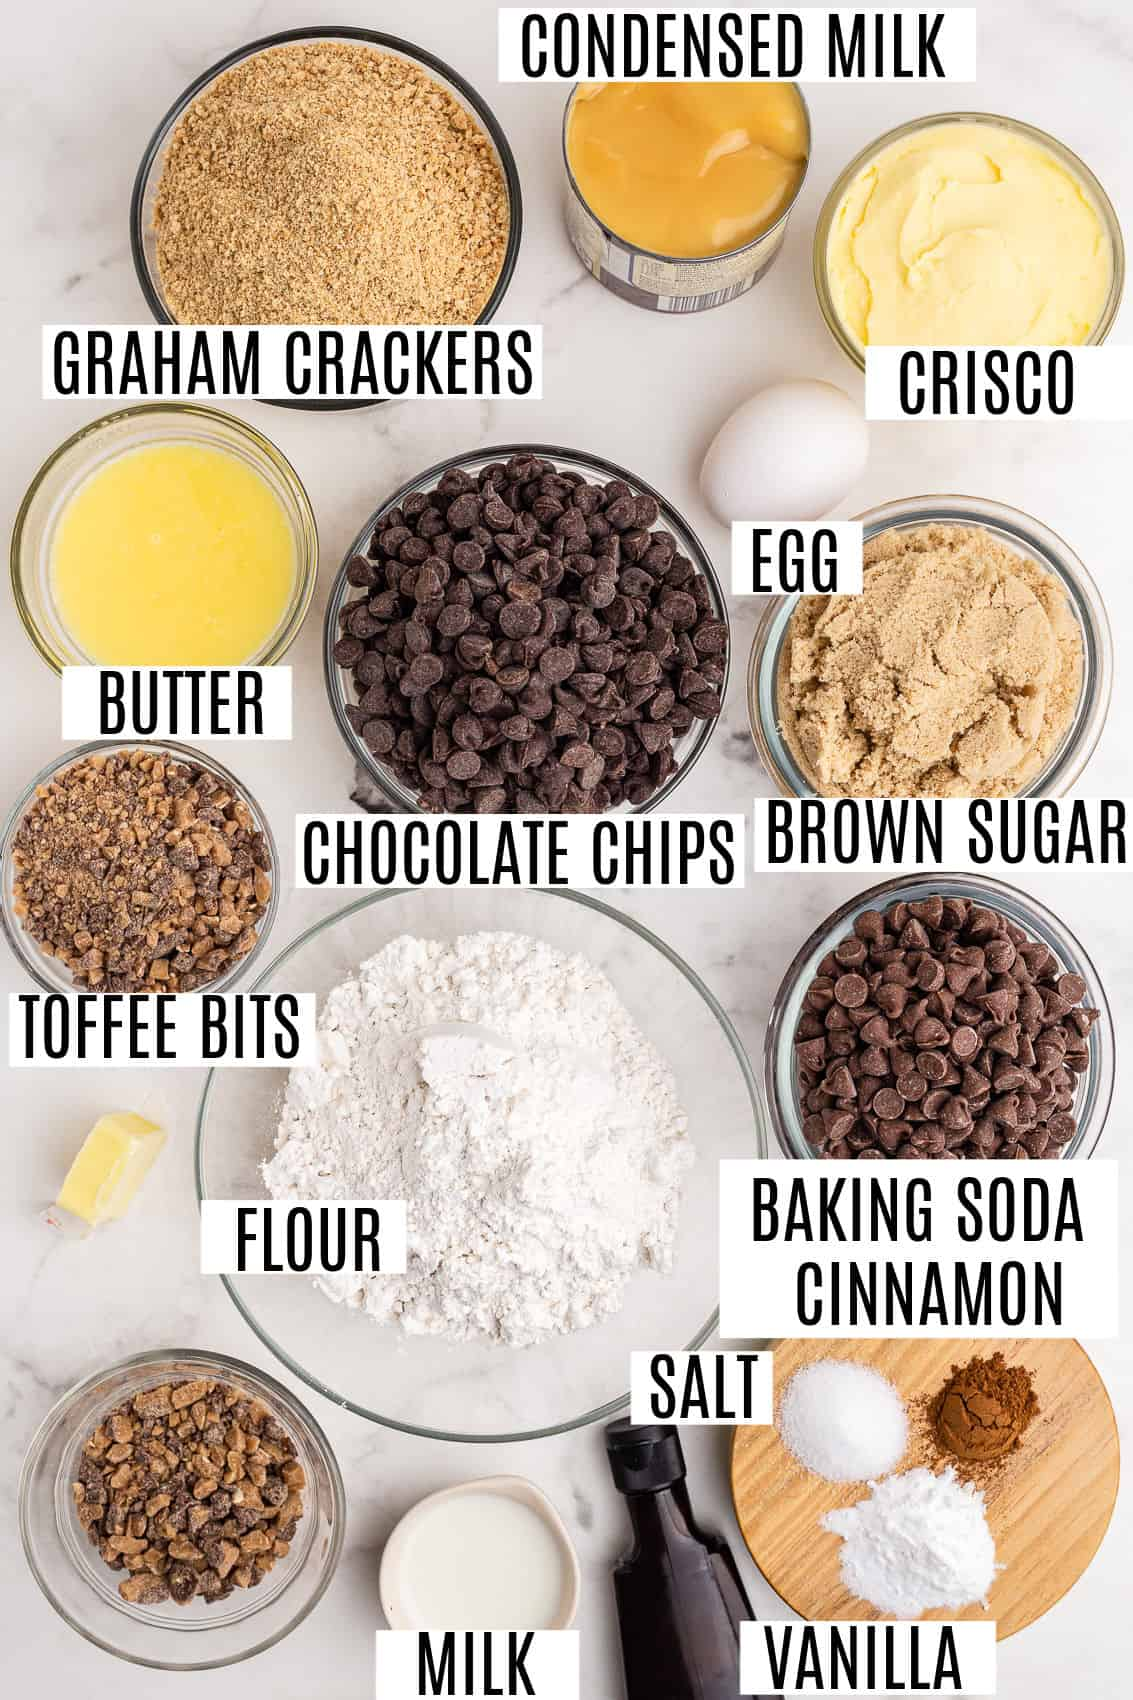 Ingredients needed to make toffee fudge chocolate chip bars.